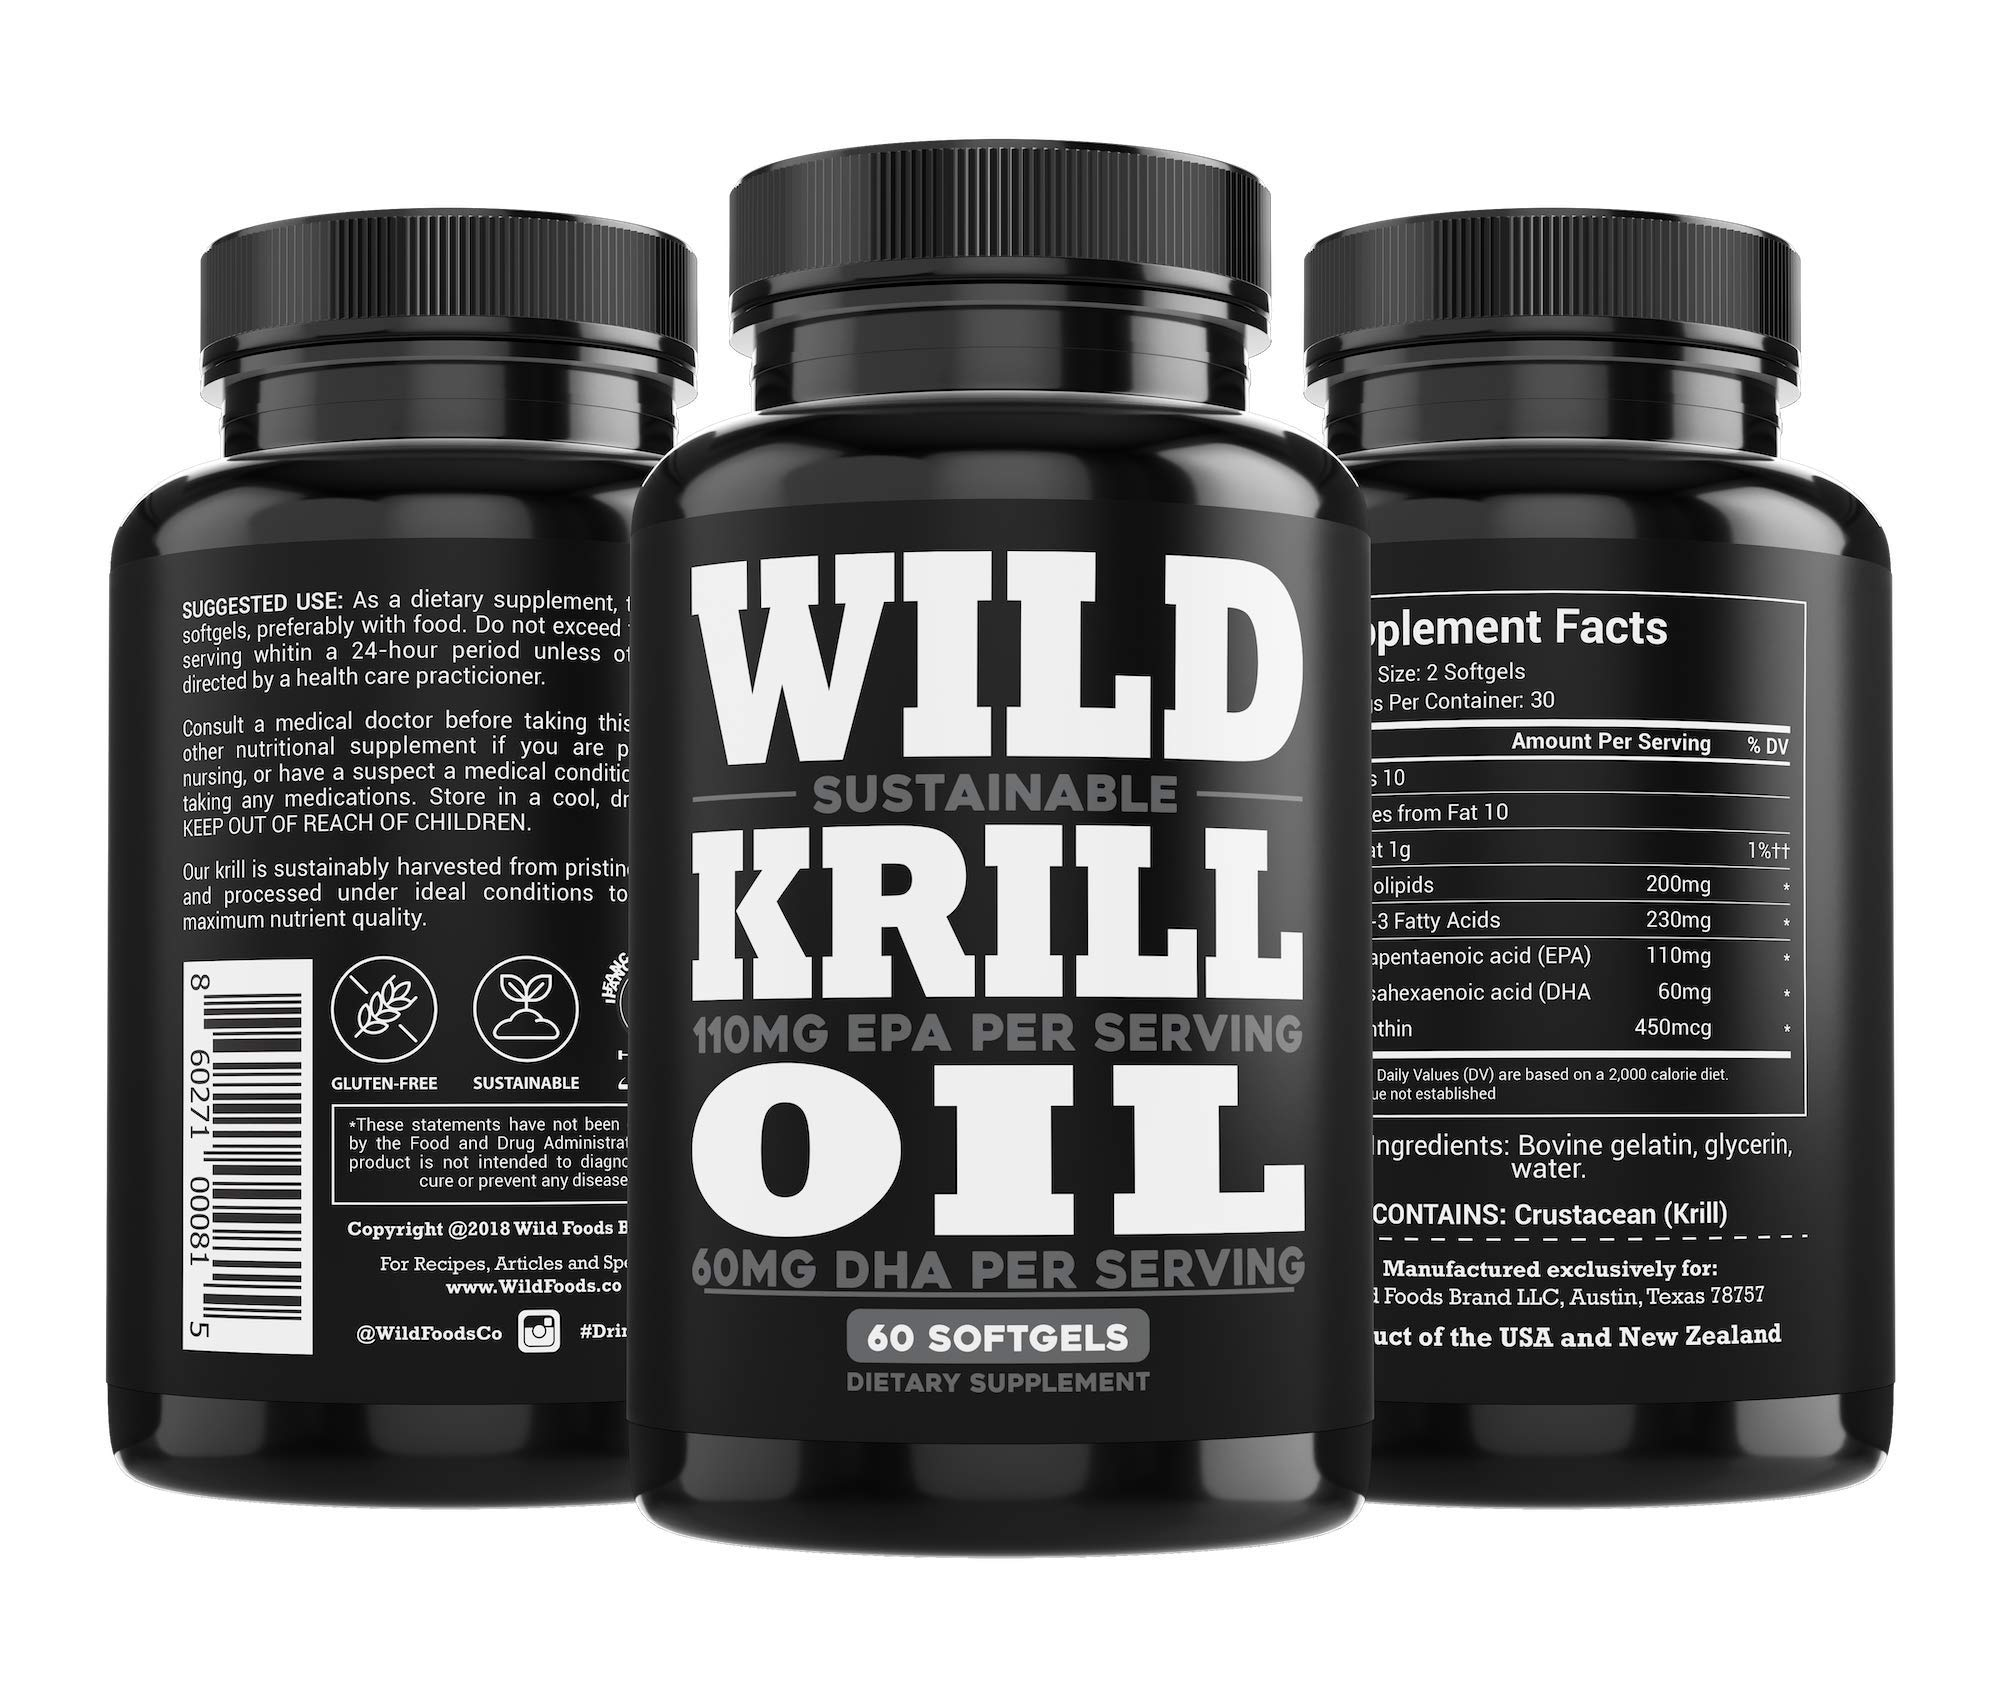 Wild Antarctic Krill Oil - Double Strength, 60 Softgels, 1000mg Omega-3 EPA, DHA, Phospholipids and Astaxanthin - Heavy Metal Tested, Certified Sustainable Sea to Shelf Traceable (2 Bottles) by Wild Foods